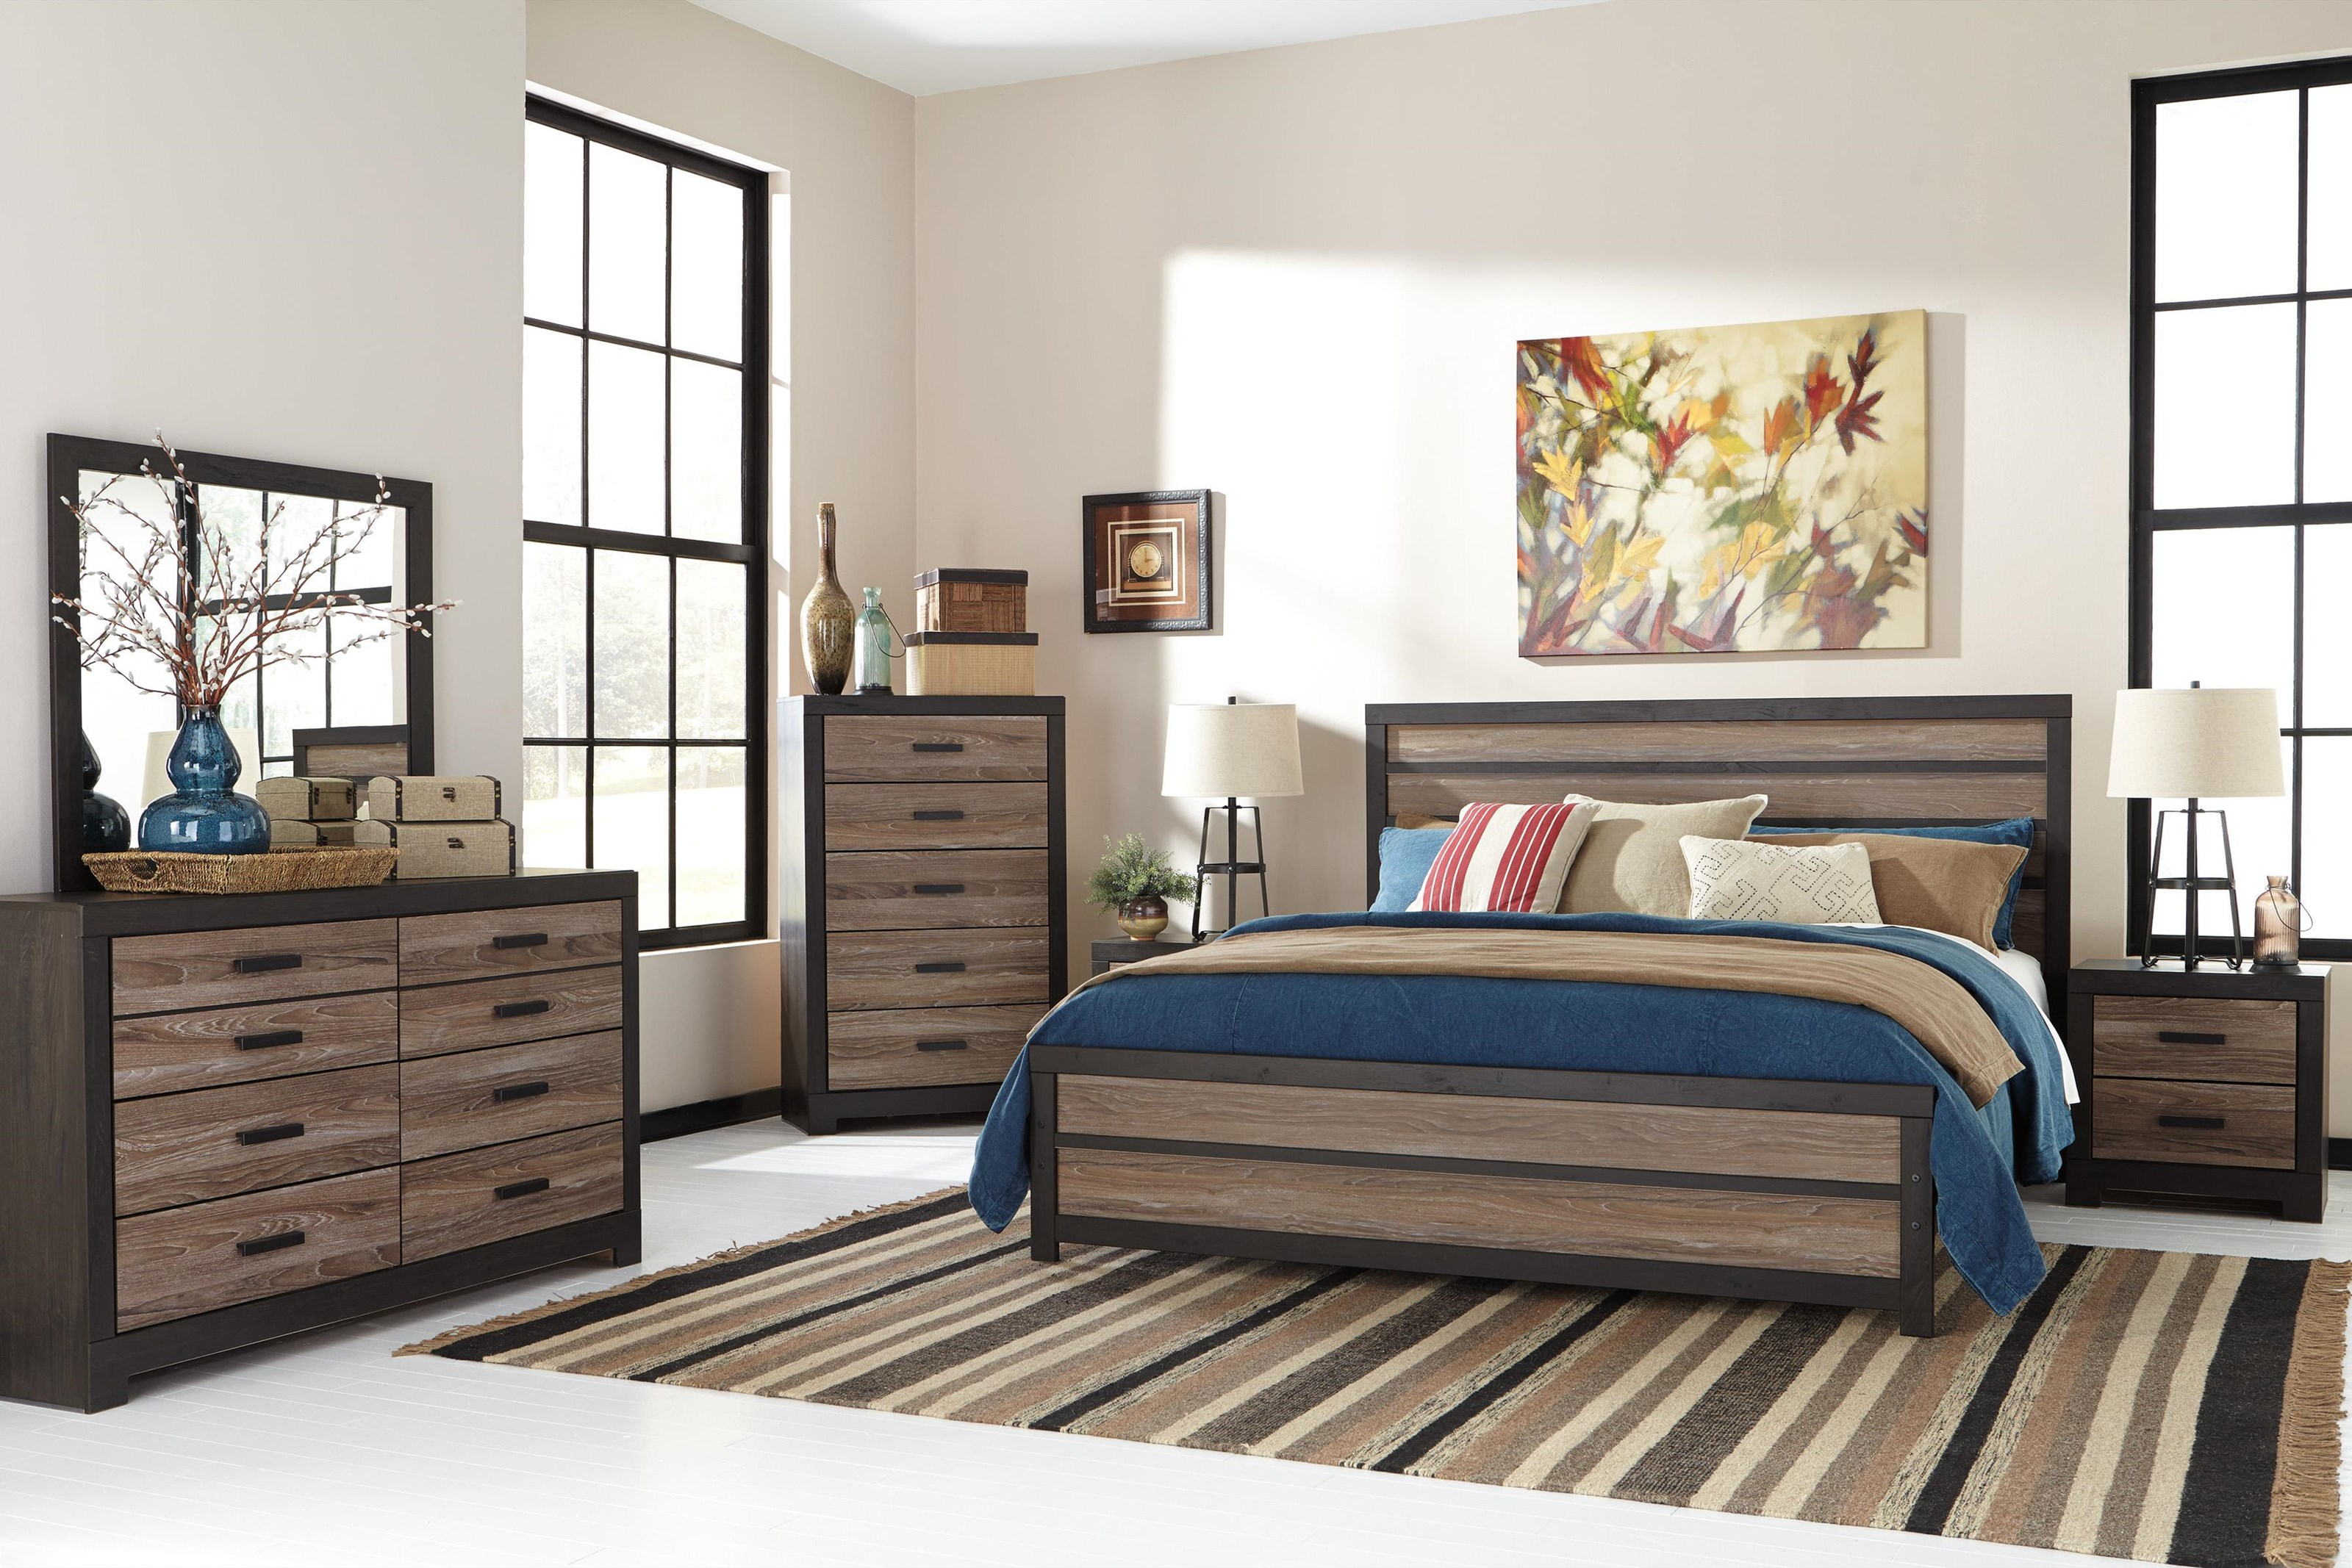 Harlinton Harlinton Queen Bedroom Group by Signature D by Signature Design by Ashley at Value City Furniture